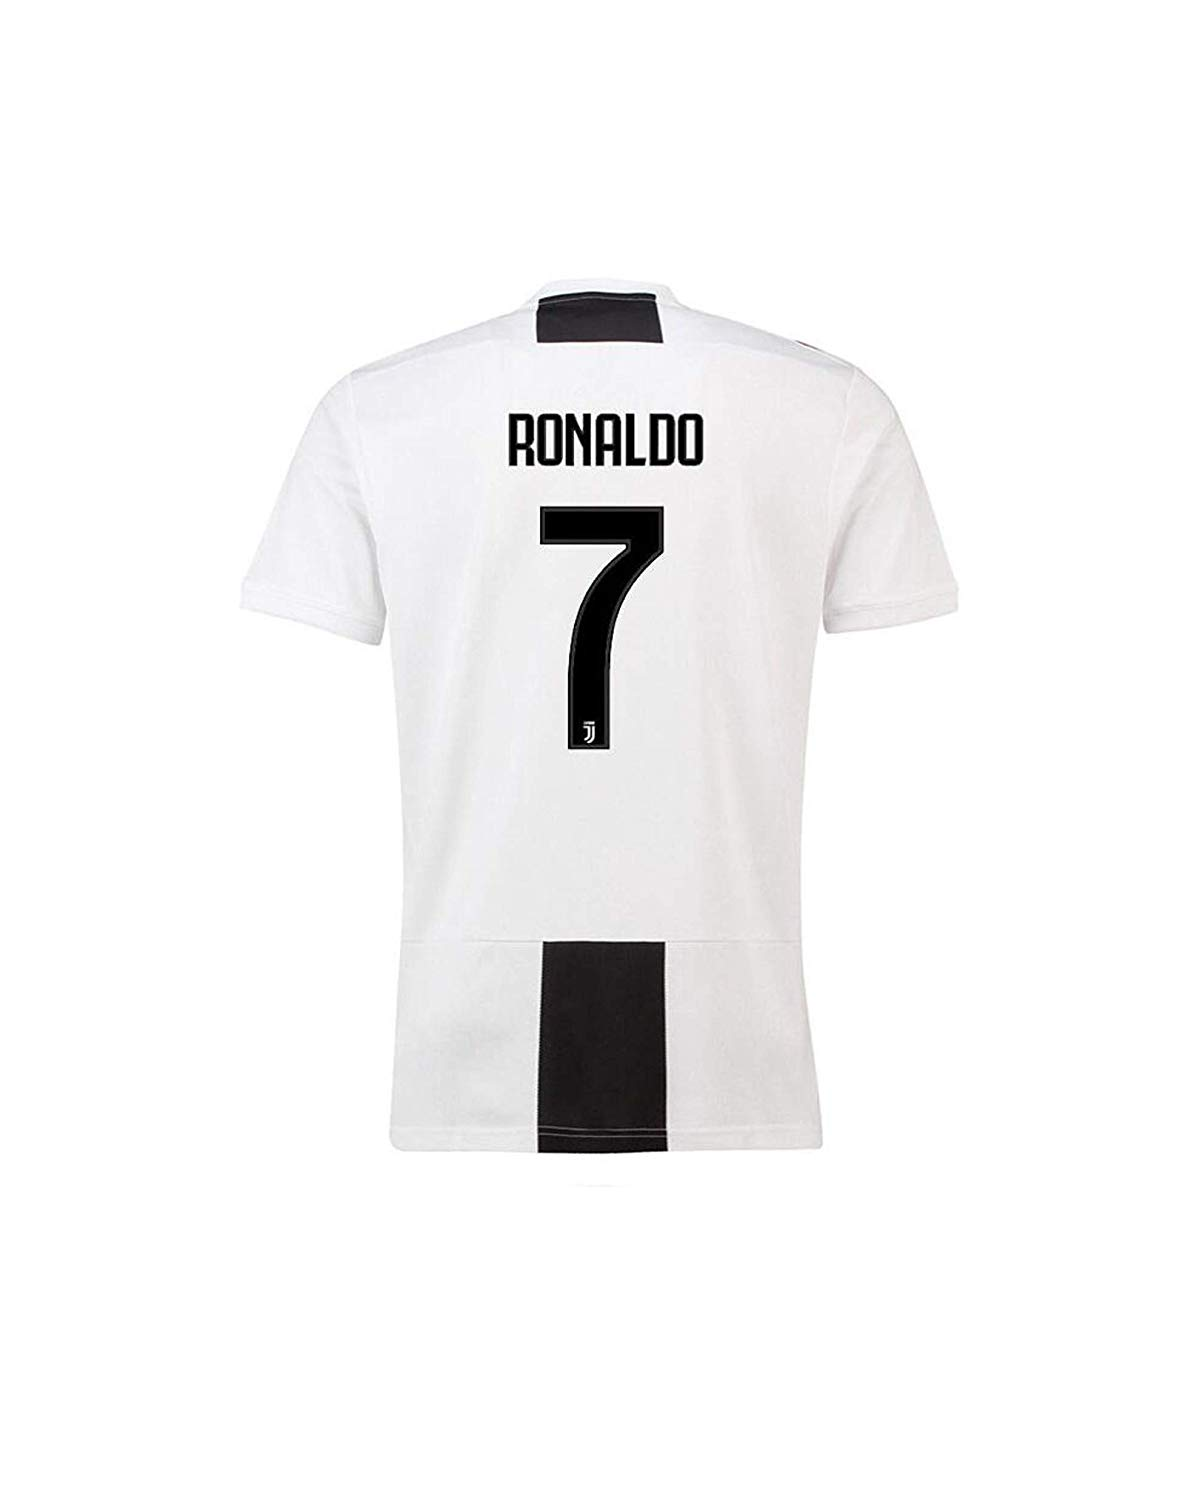 ... Youth Jersey shirt + Shorts + CR7 BAG   ULTIMATE FAN GIFT SET for Boys    Girls. 19.99. null. Get Quotations · MBAP7CRS 2018-2019 Juventus  7 C  Ronaldo ... cc5ba88a4